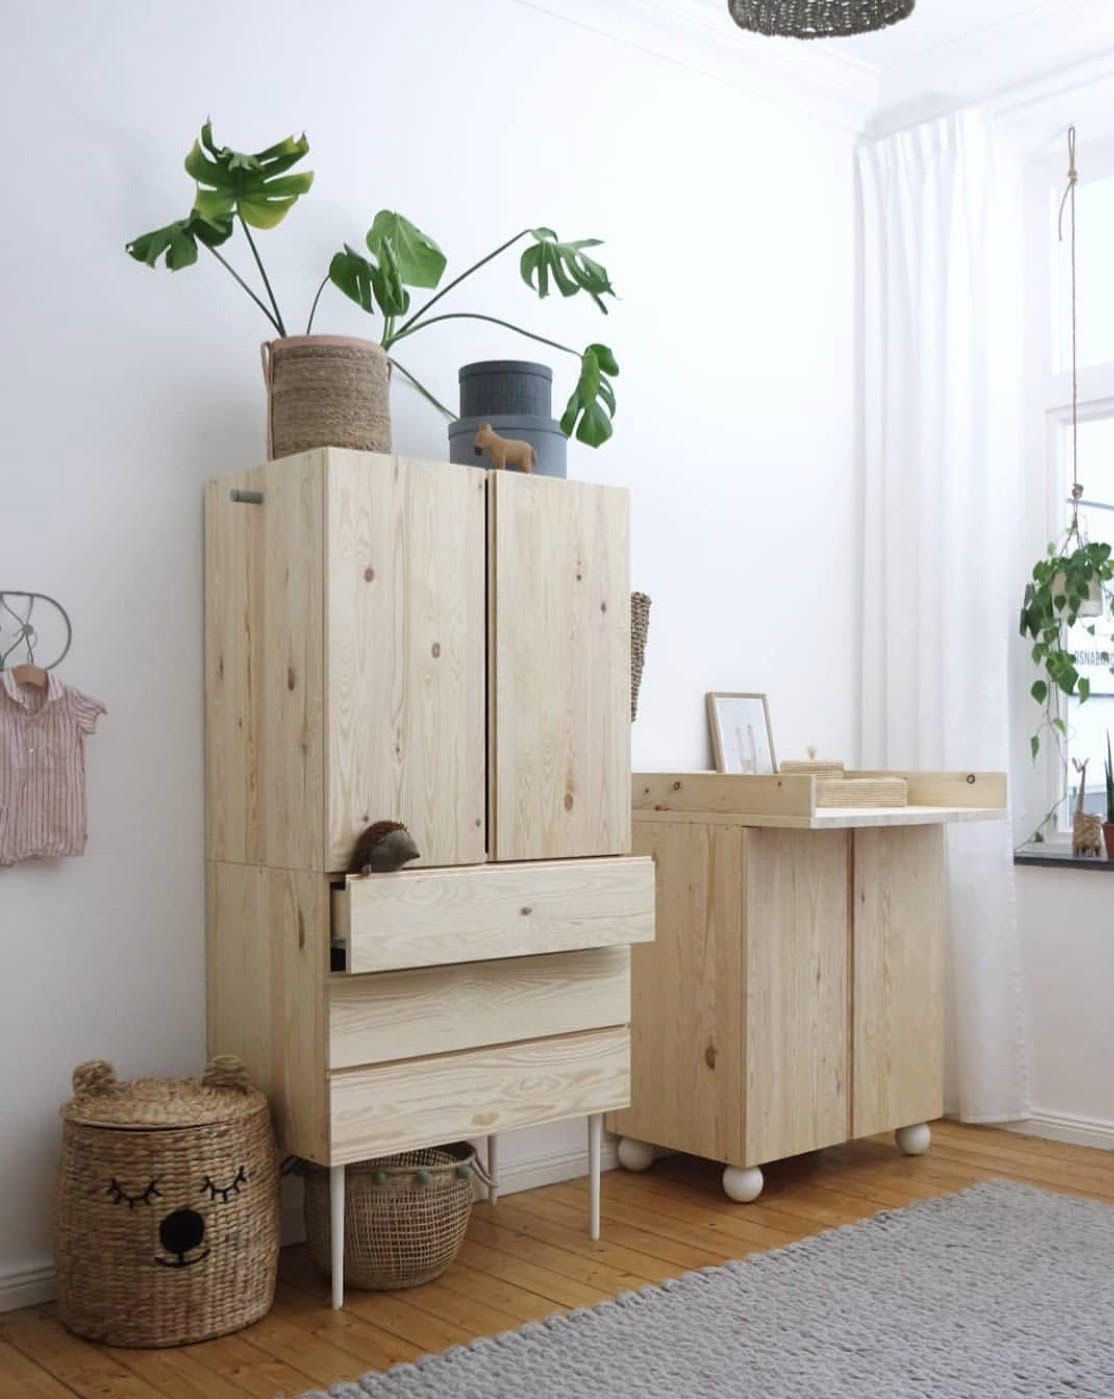 Ikea Strandkorb Pretty Movement - The Place To Be To Check Out Inspiring Ikea Hacks. - Prettypegs - Six Fab Ikea Ivar Hacks! | Home, Ikea Ivar, Furniture